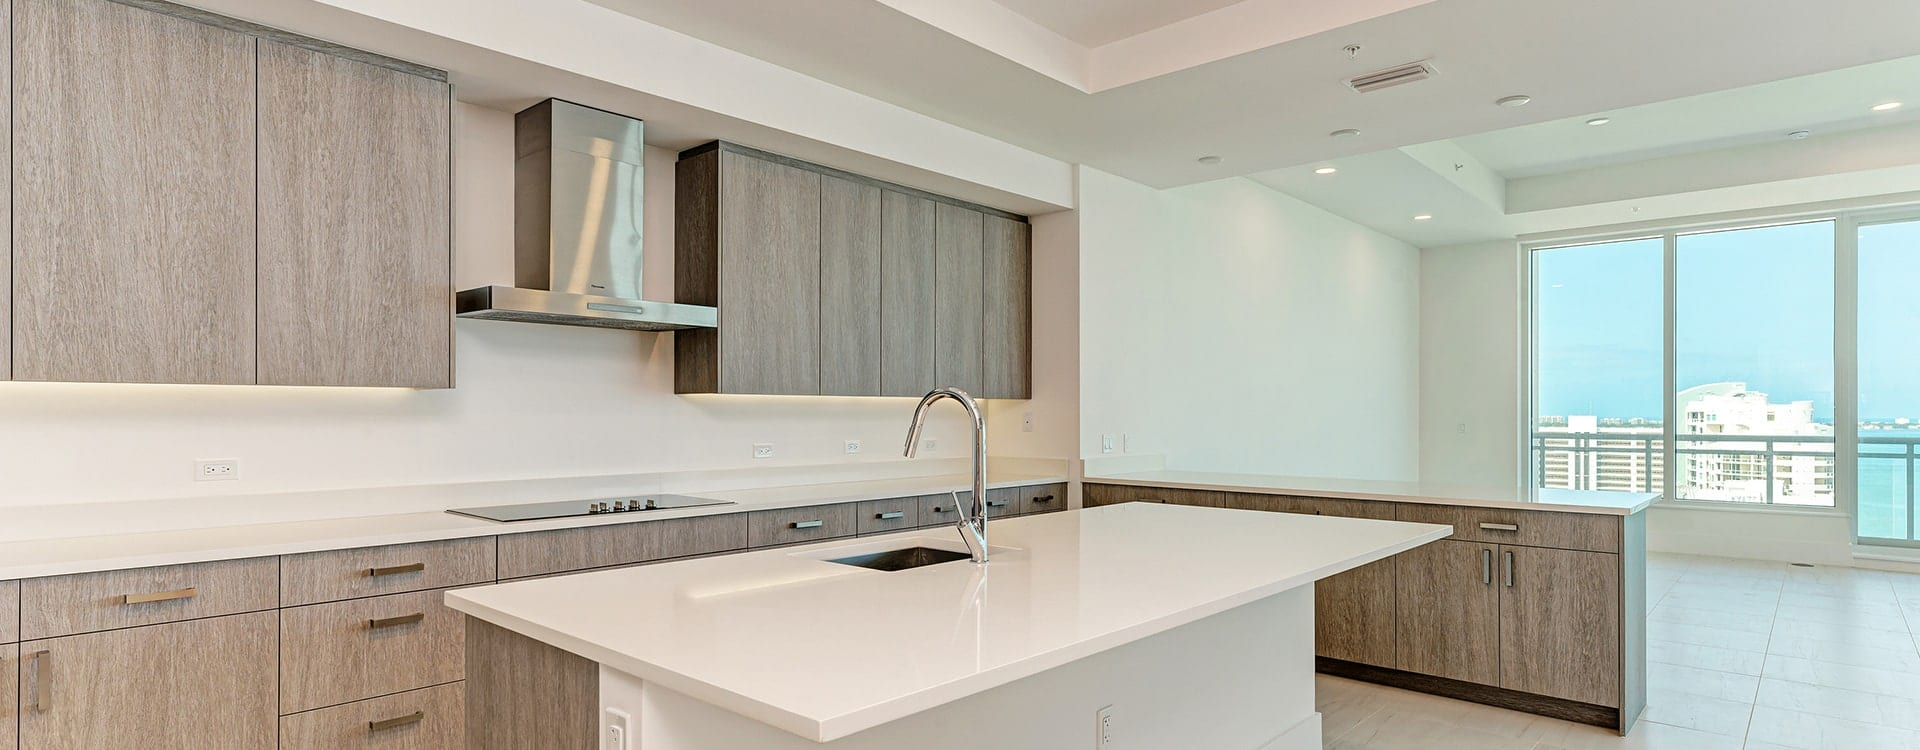 kitchen and island at BLVD Sarasota Residence 1702